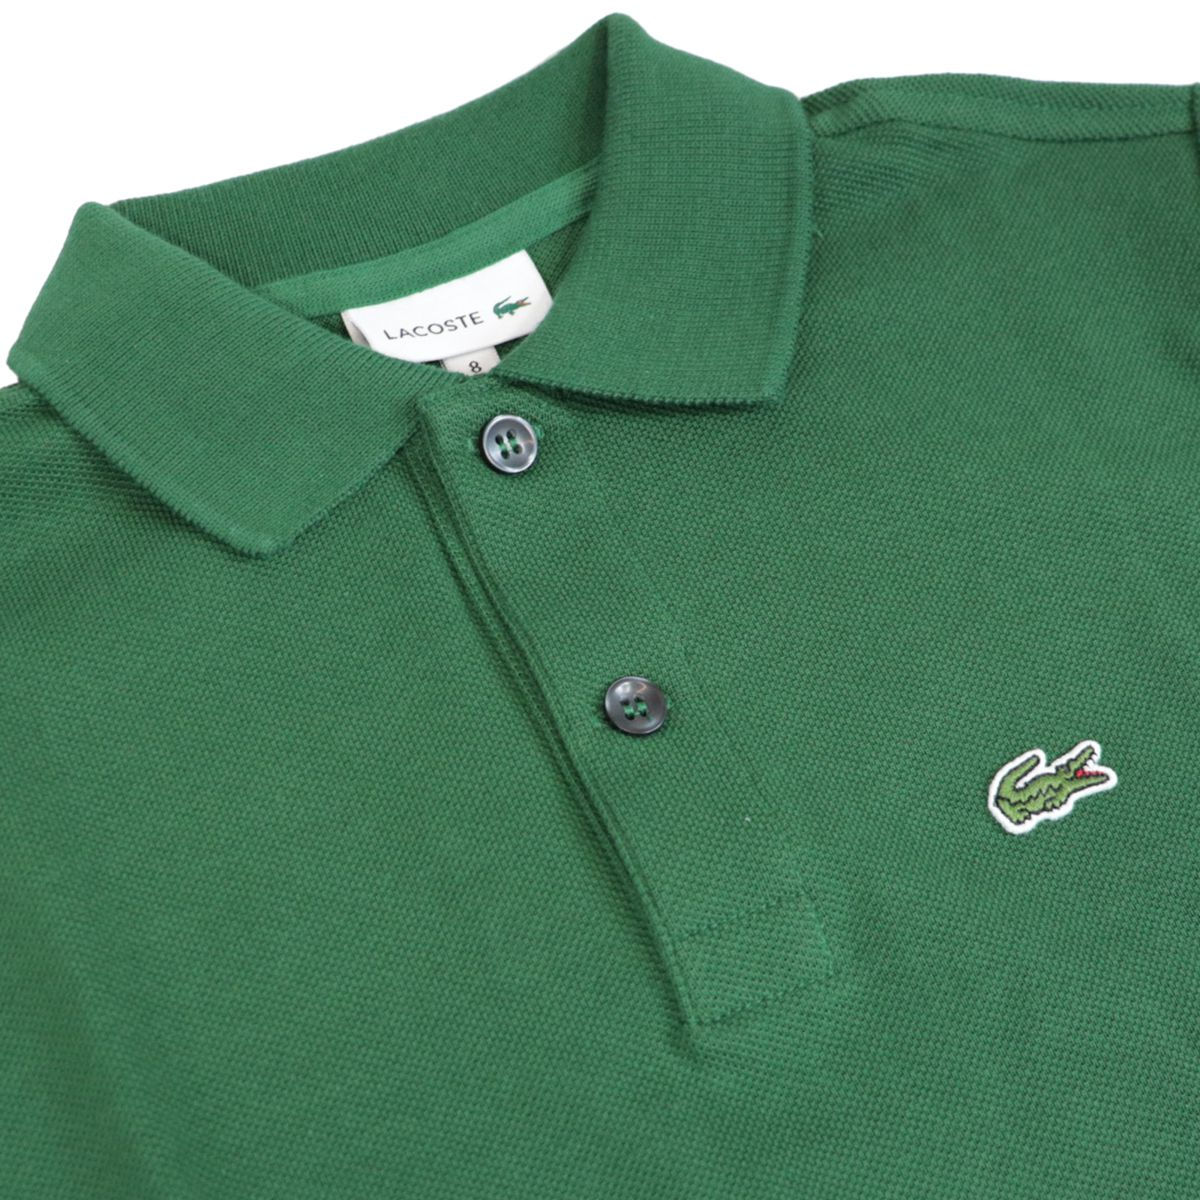 Cotton piqué polo shirt with 2 buttons with logo Green Lacoste